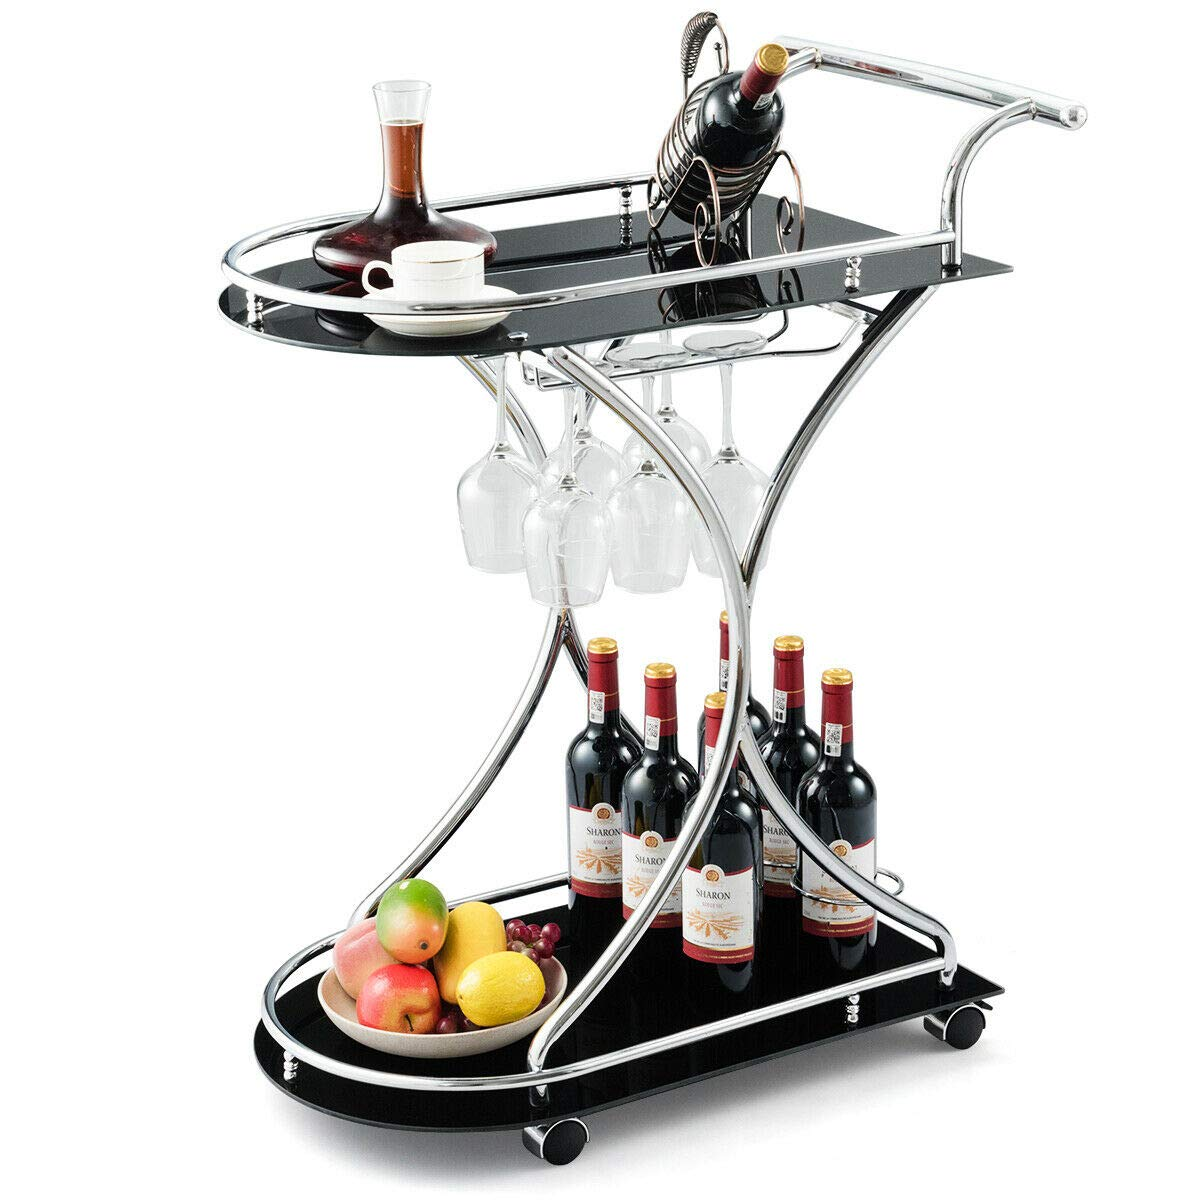 Tangkula Rolling Bar Cart, Glass Serving Cart with Metal Frame and 2 Tempered Glass Shelves, Tea/Wine Serving Bar Cart with 4 Wheels, Ideal for Kitchen, Hotel or Restaurant (Slver & Black) by Tangkula